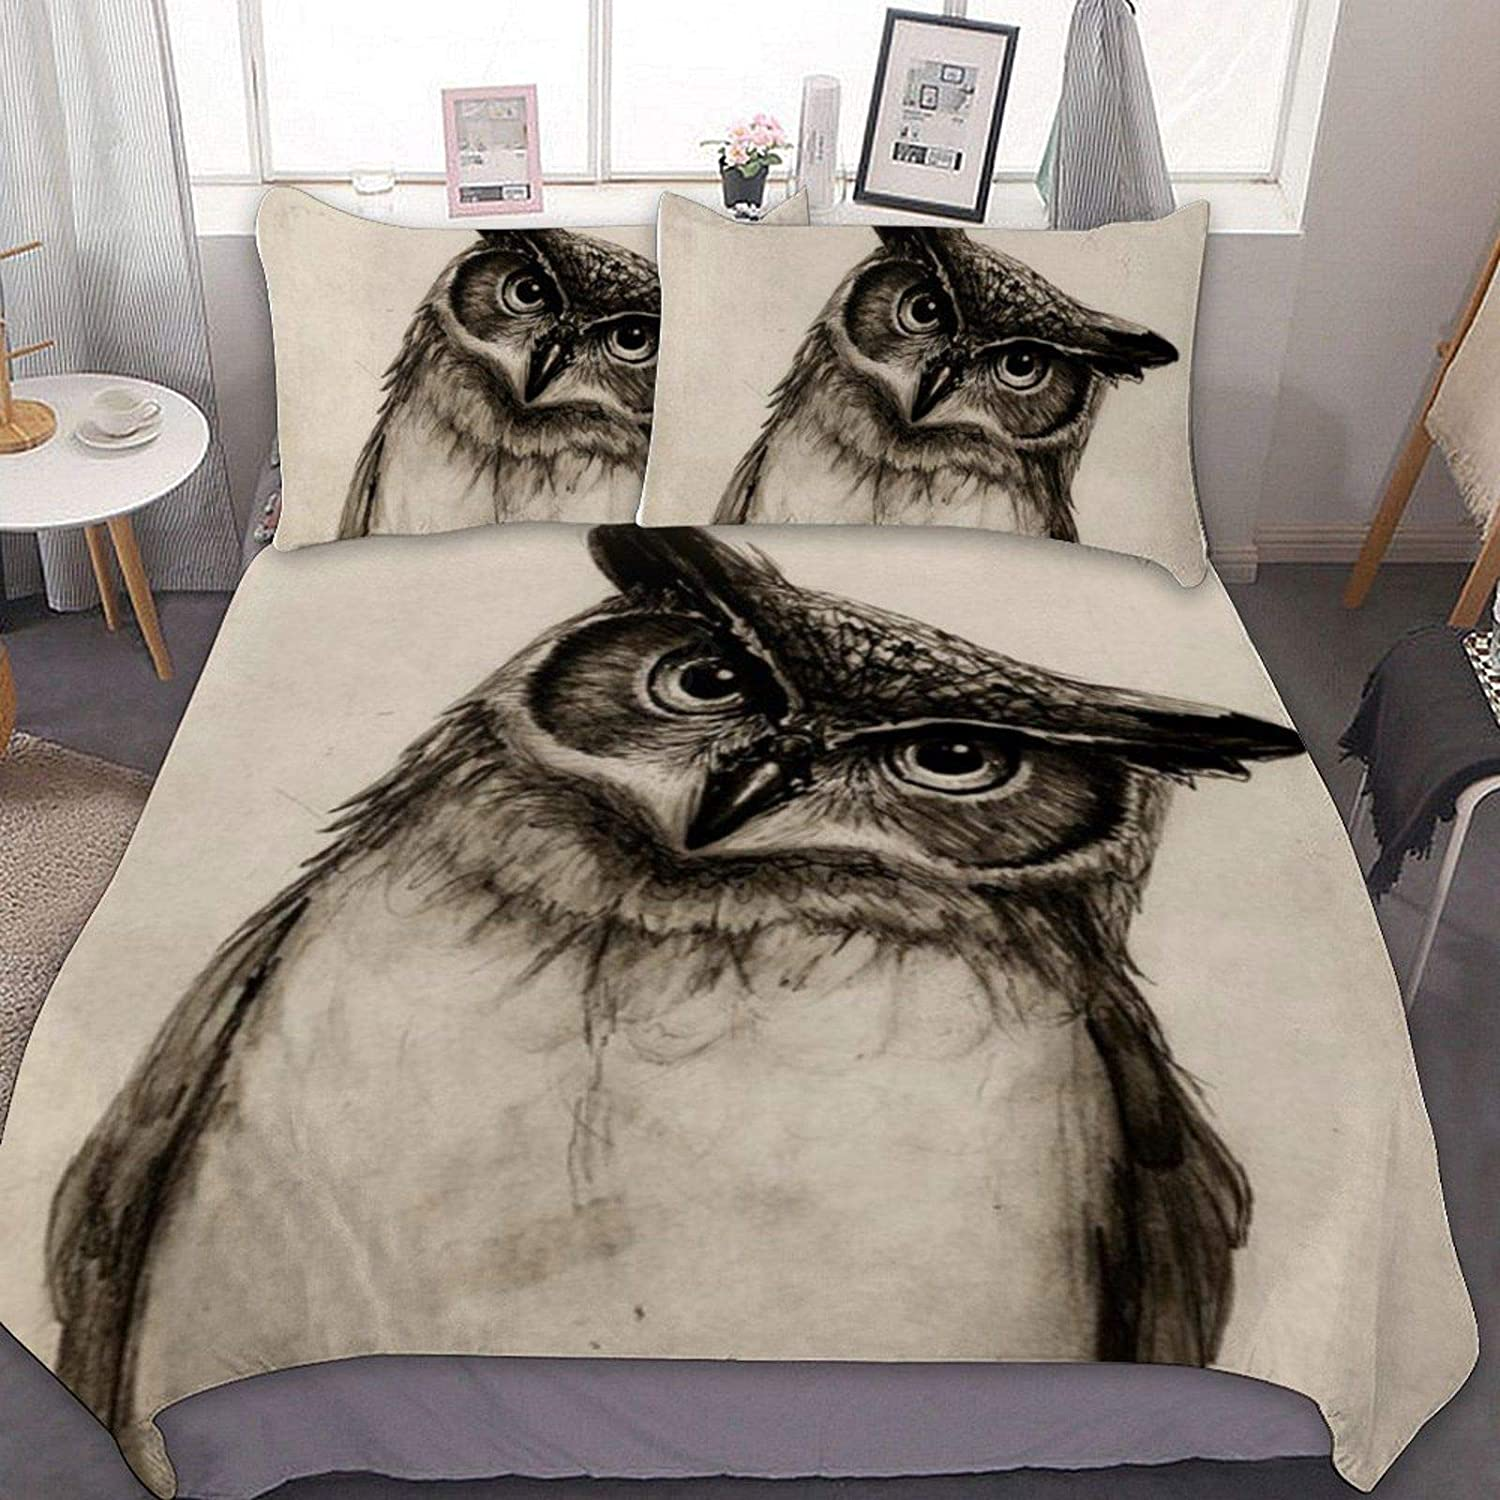 Bedding Set - 3 Piece Owl Pillow with In a popularity Popular overseas Shams Sketch Comforter